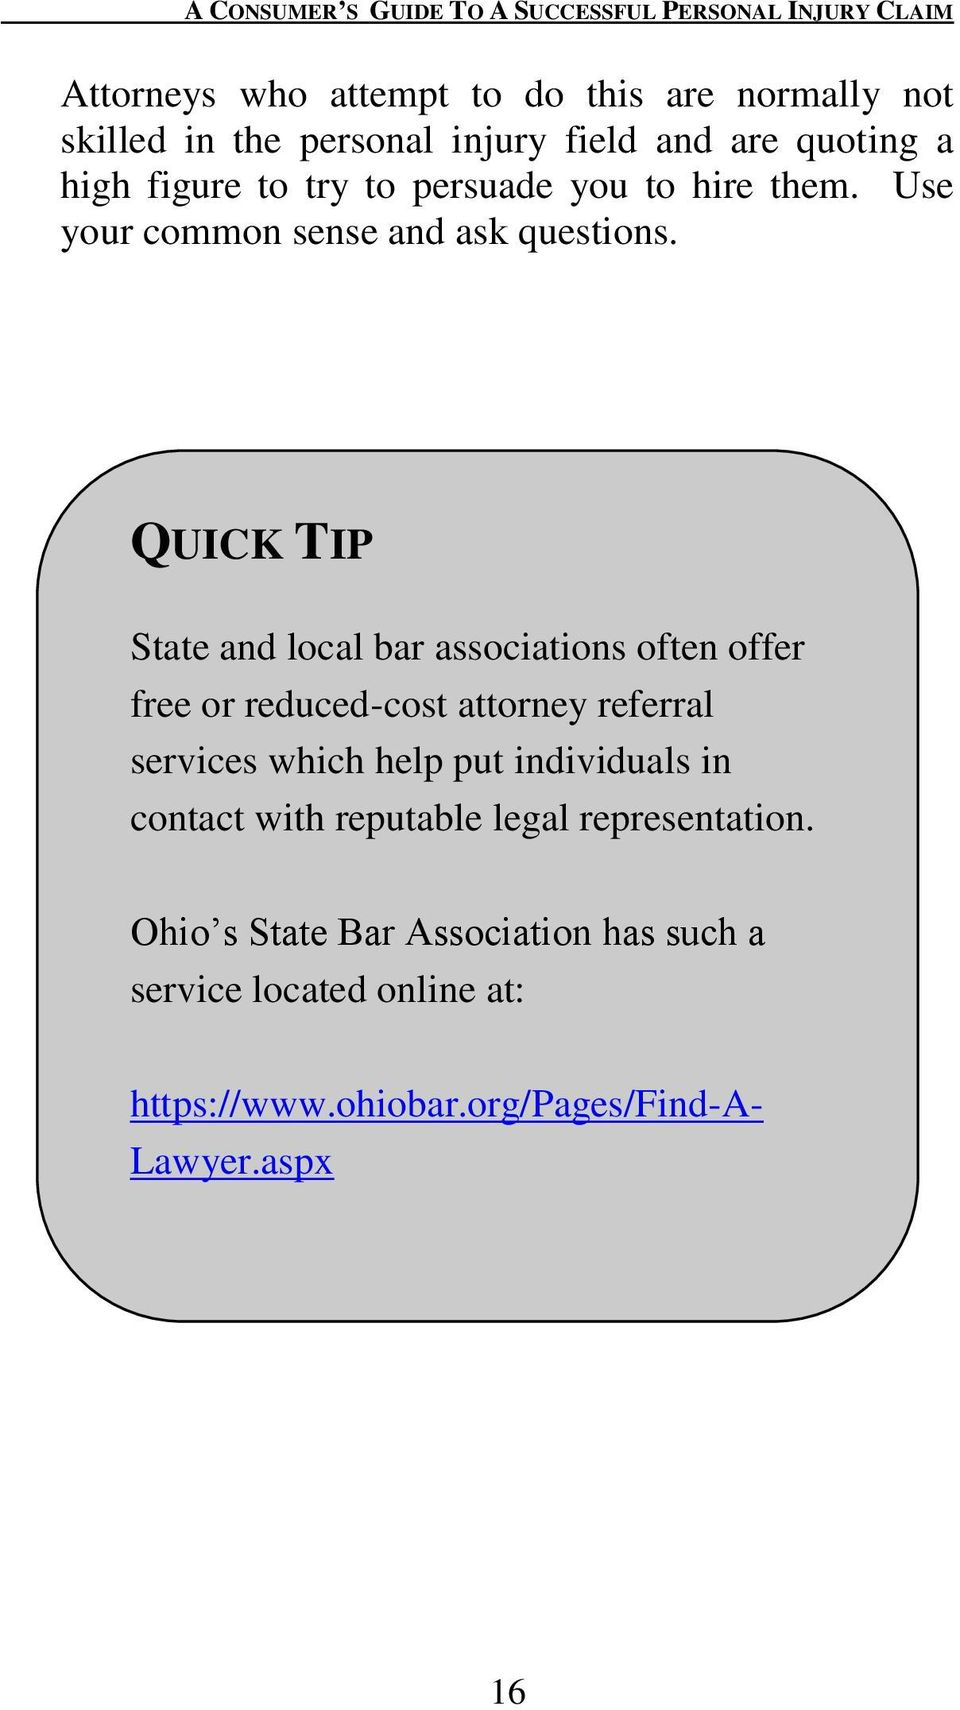 QUICK TIP State and local bar associations often offer free or reduced-cost attorney referral services which help put